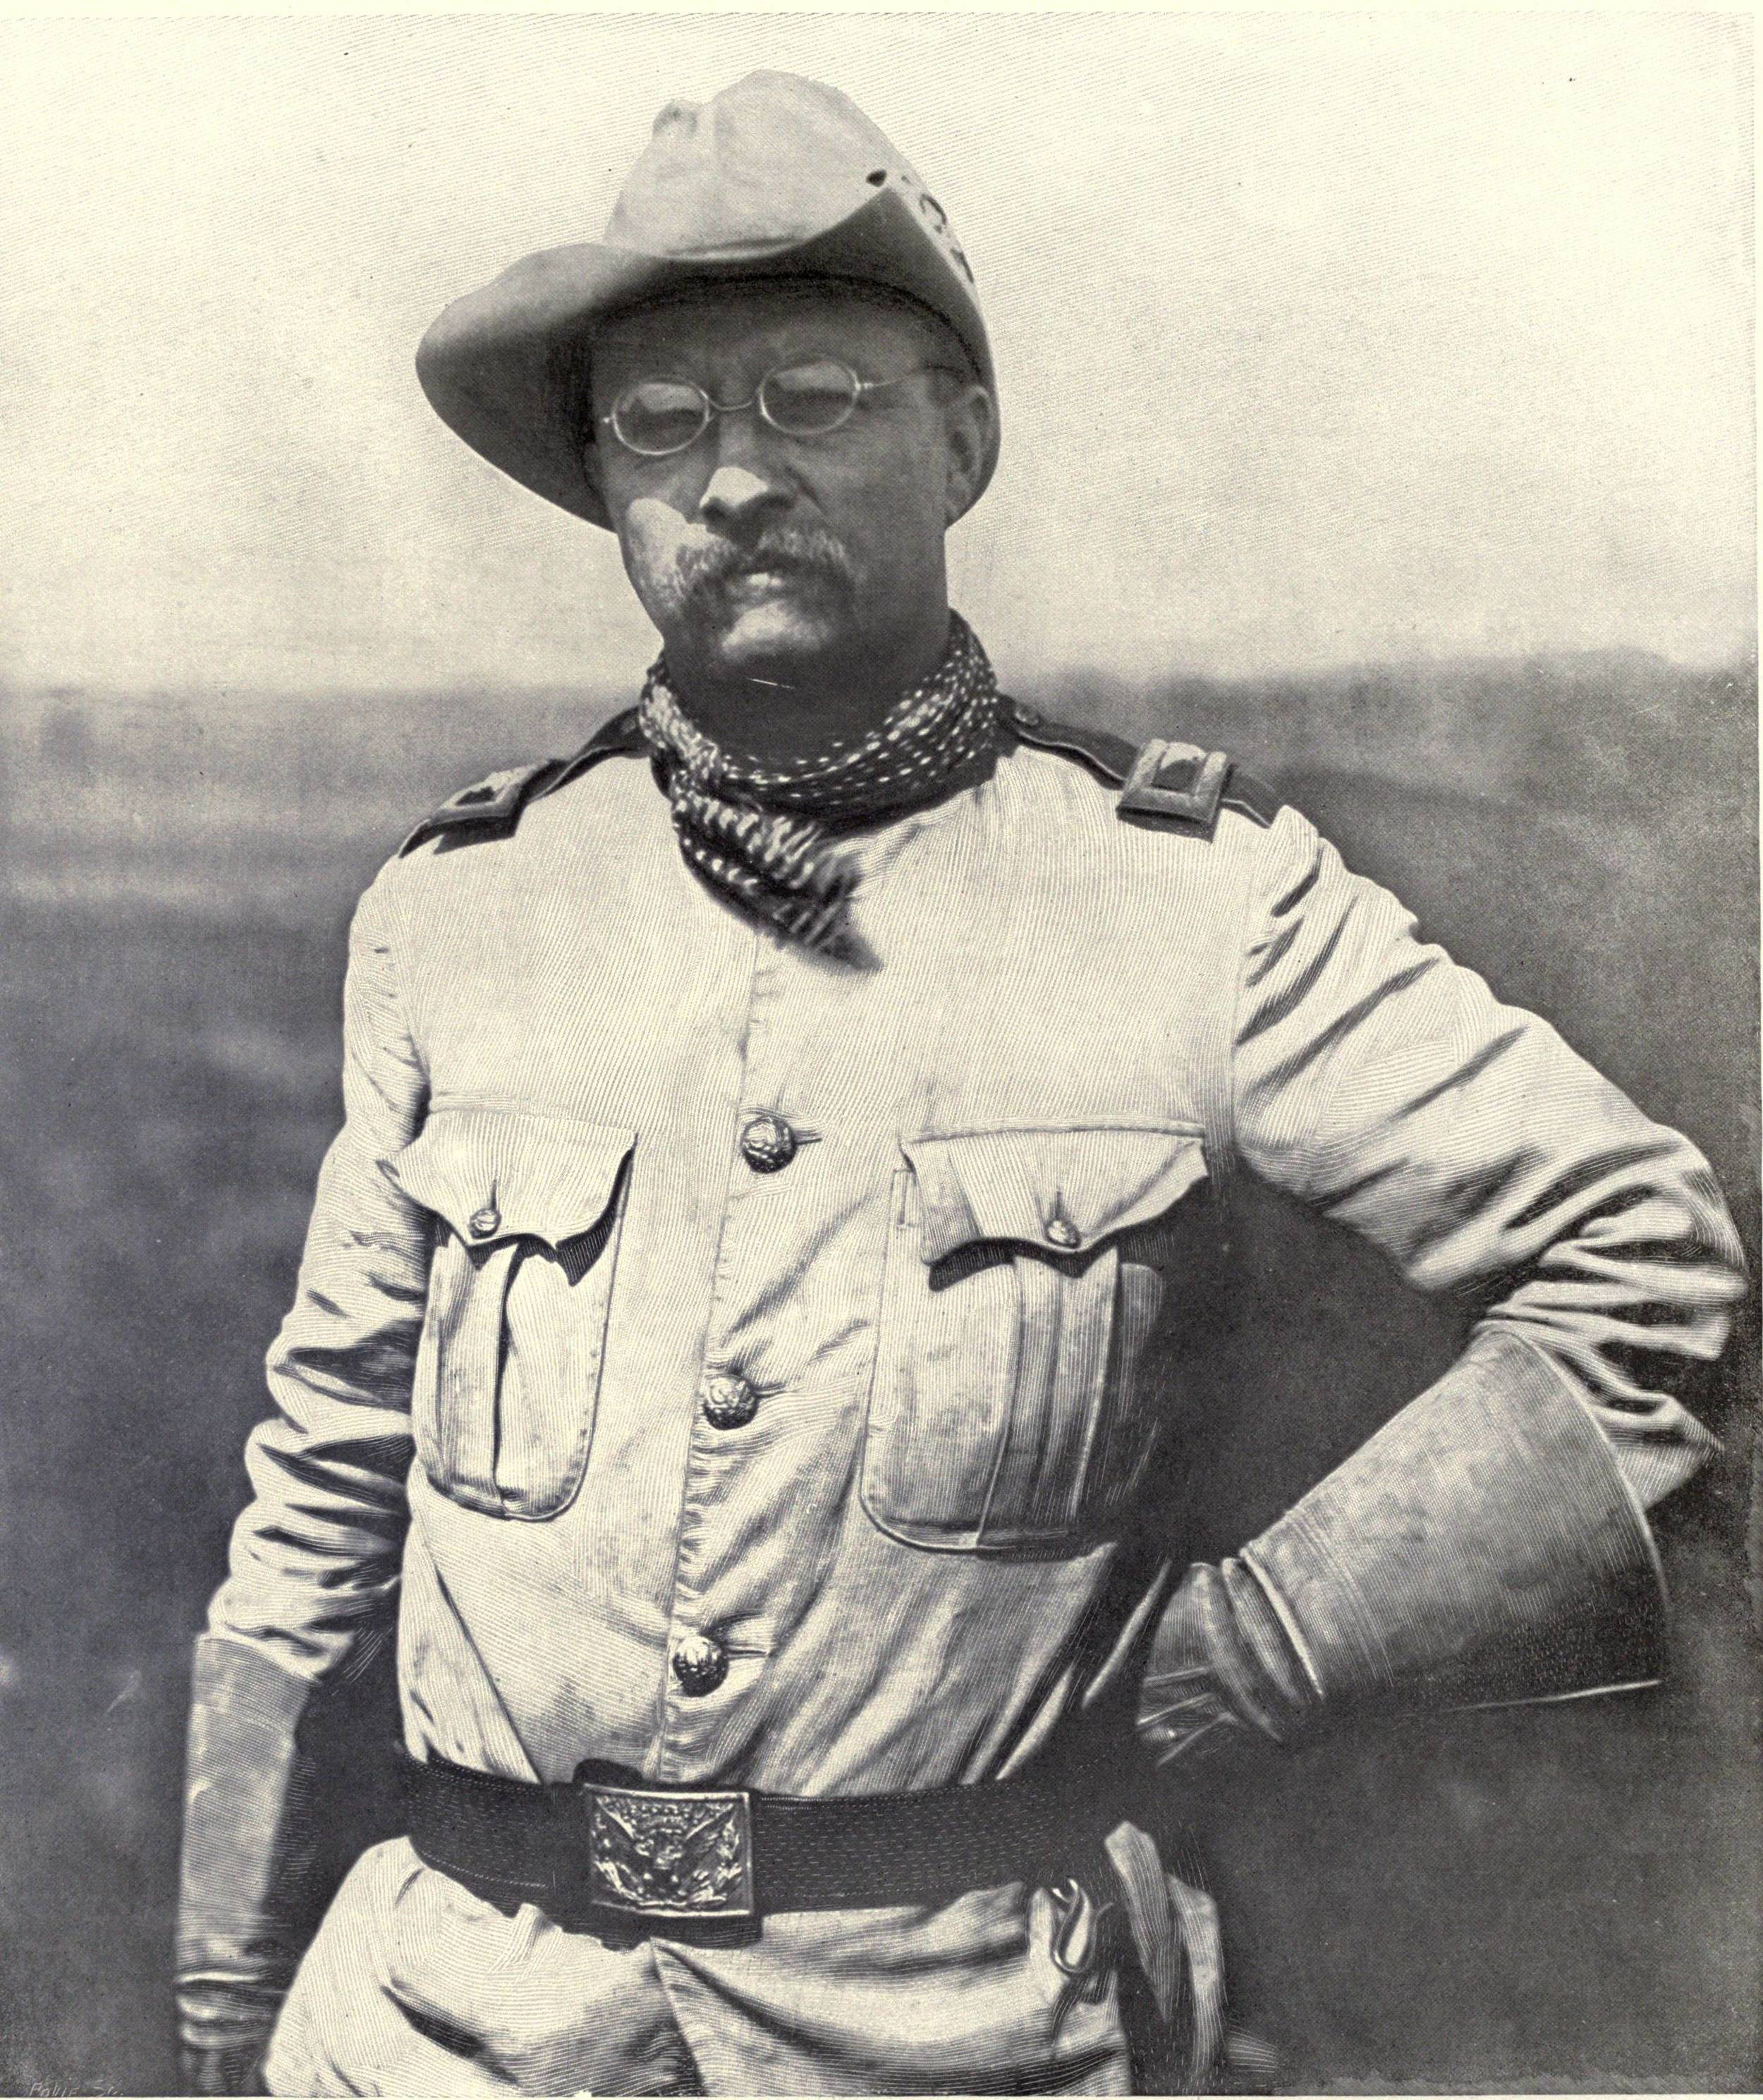 Theodore Roosevelt when in the Rough Riders during the 1898 Spanish-American War. From  Harper's Pictorial History of the War with Spain, Volume II . Published in 1899.